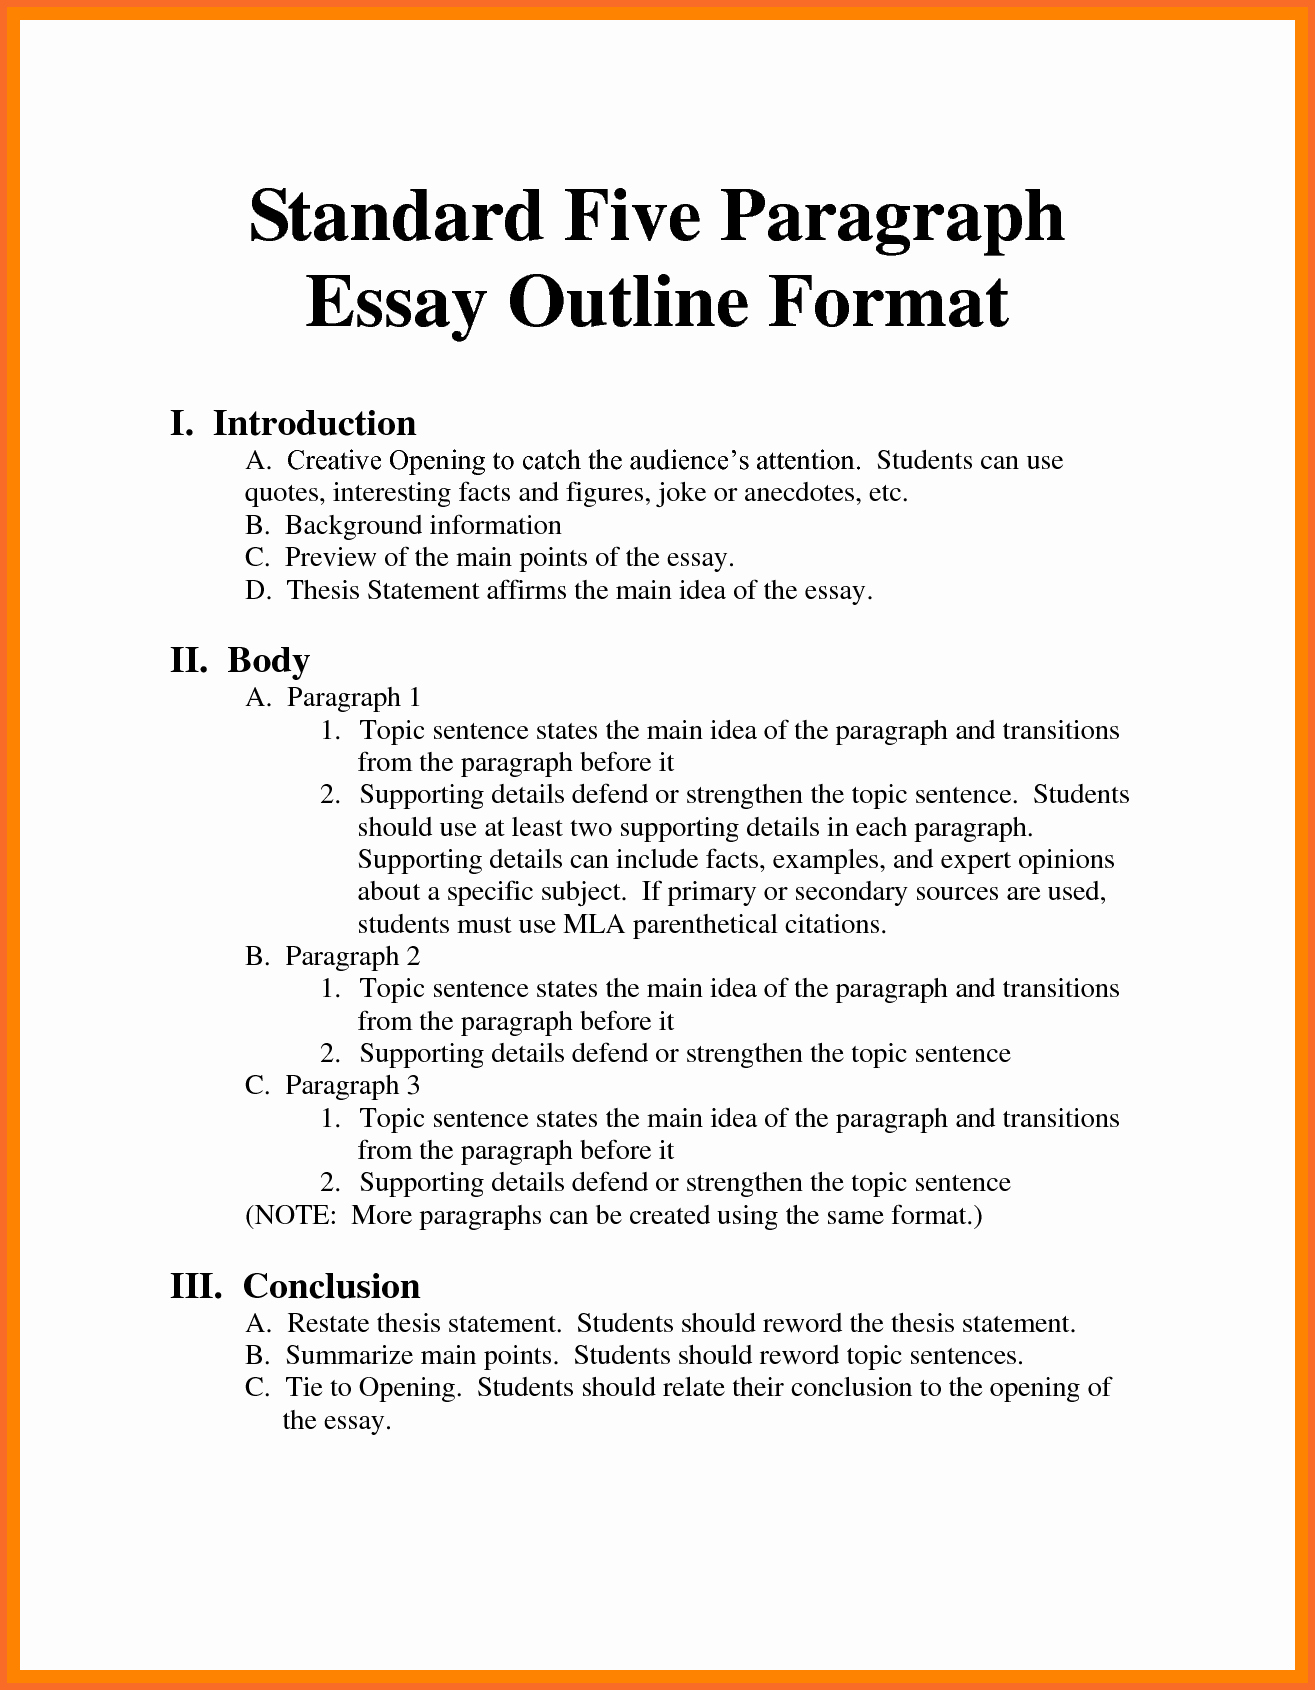 Research Paper In Mla format Luxury Sample Outline Mla format Research Paper Bamboodownunder